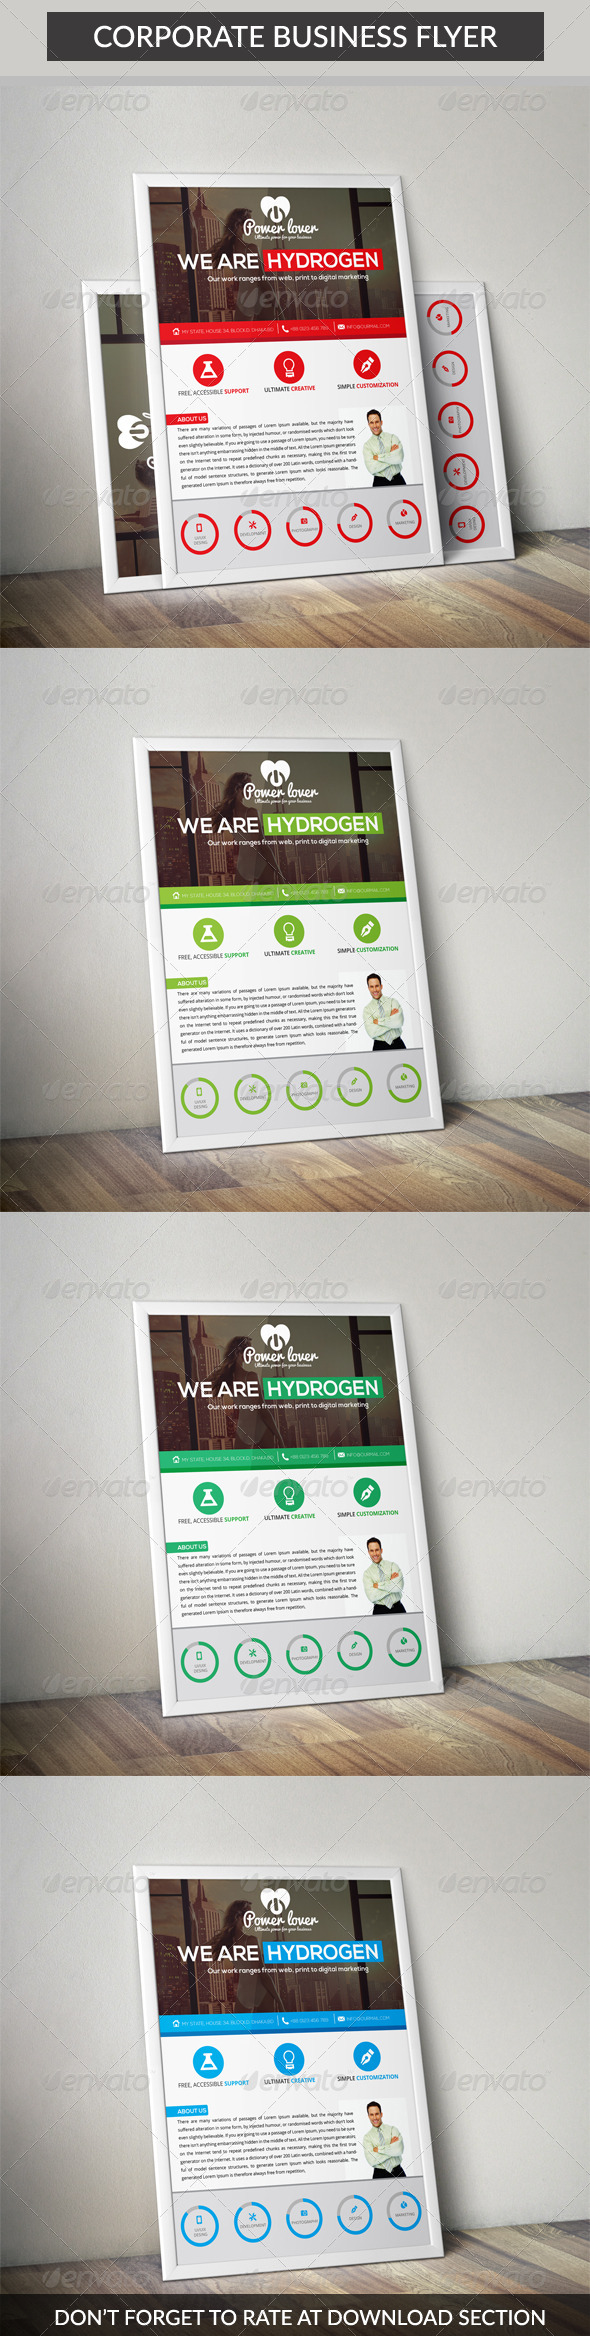 GraphicRiver Corporate Business Flyer 7095279